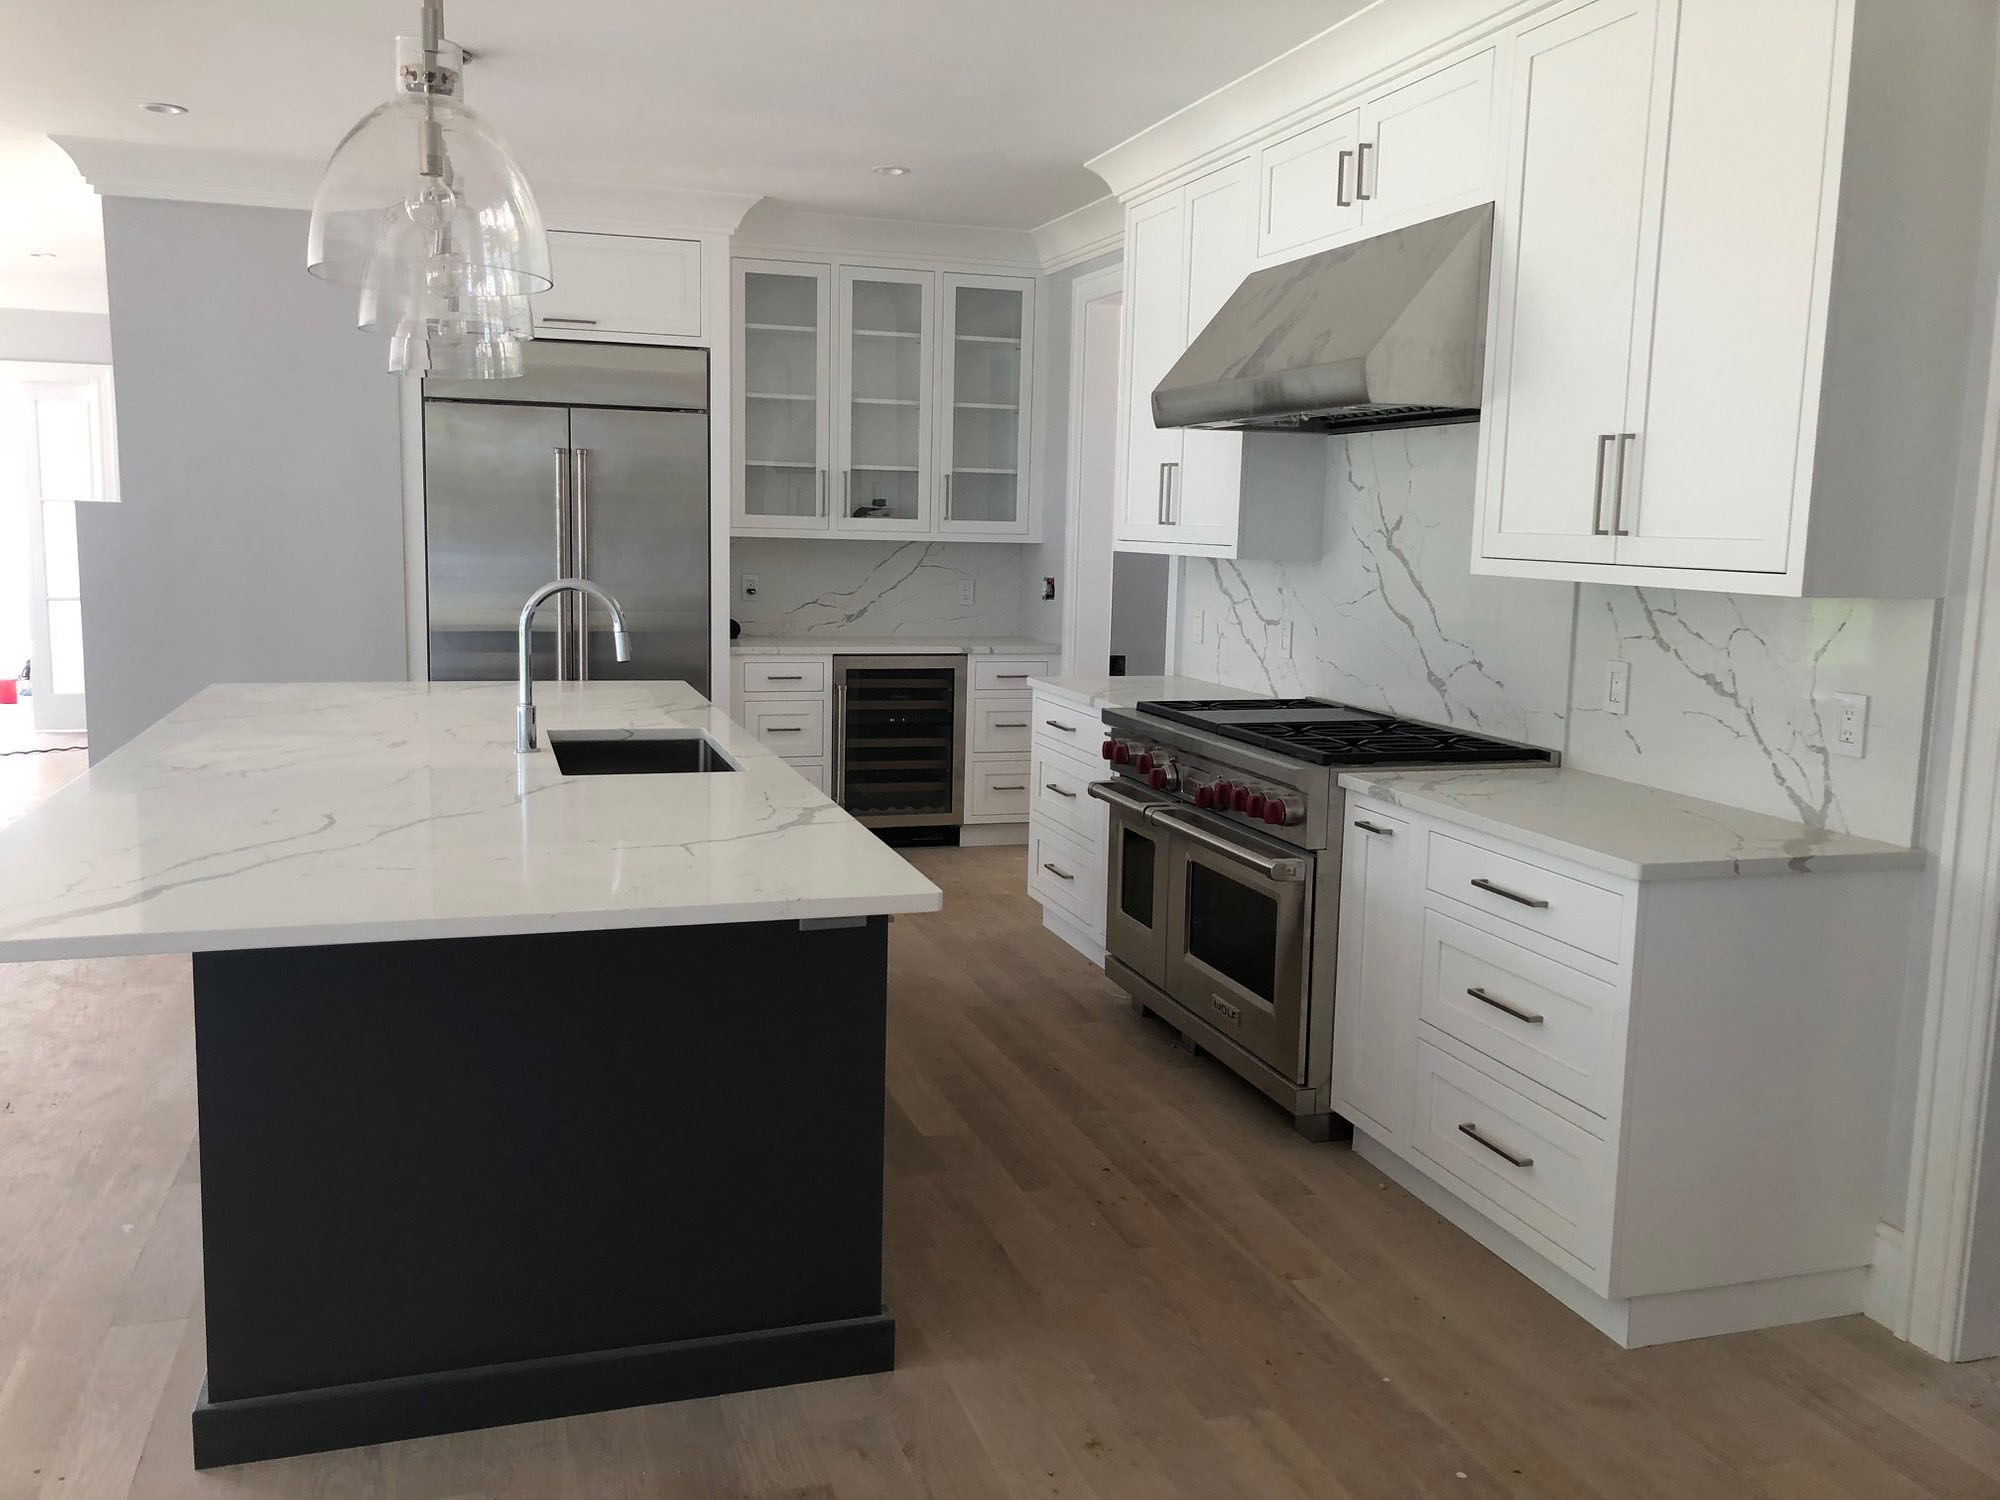 Two toned kitchen cabinet design featuring white cabinets and a black island. Marble quartz countertops with matching solid slab backsplash.